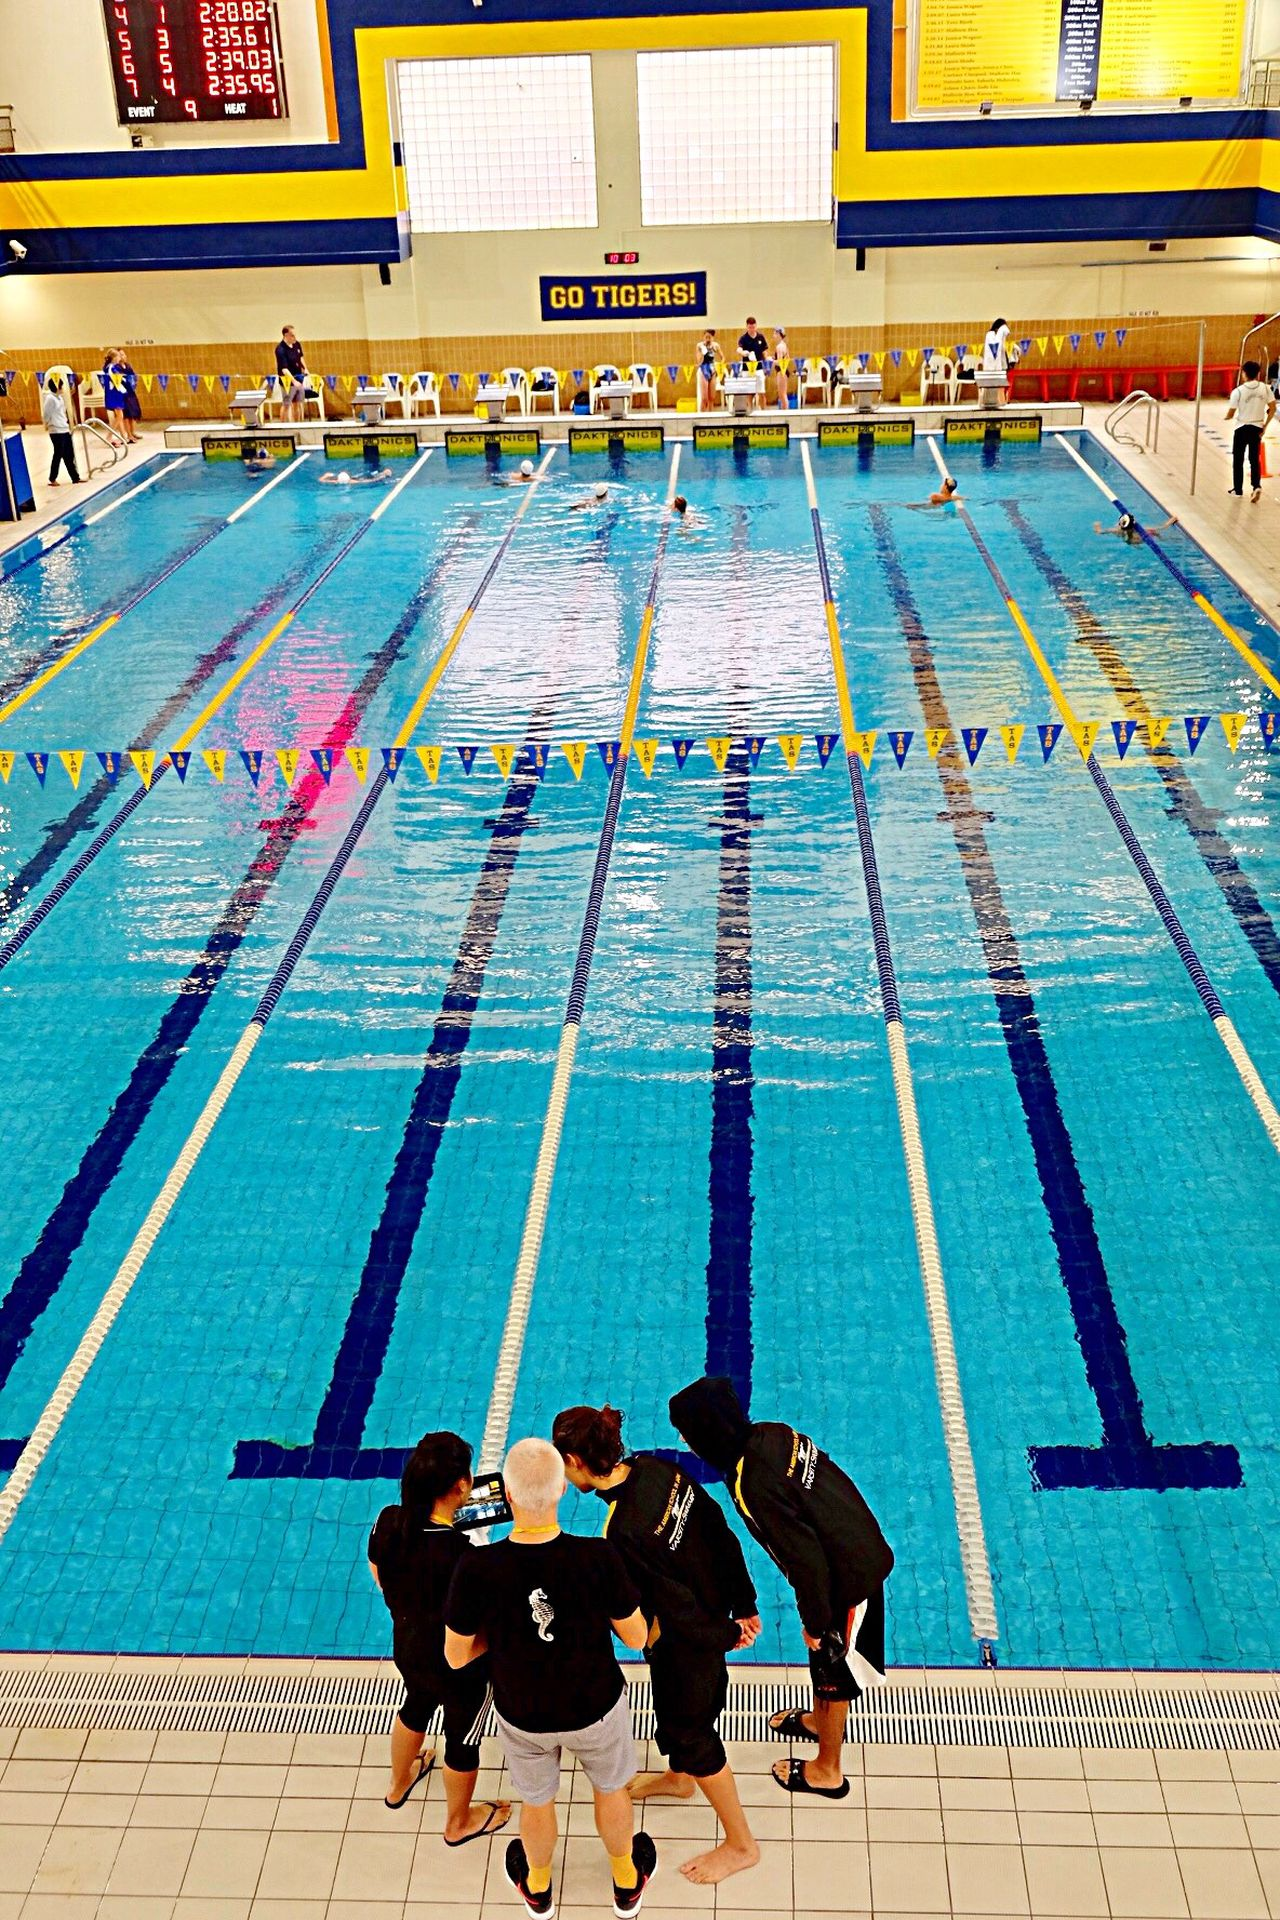 Poolside Sport Swimming Pool Competition Swimming Athlete High Angle View Sports Training Full Length Motivation Competitive Sport Indoors  People Swimming Lane Marker Starting Line Water Sports Race